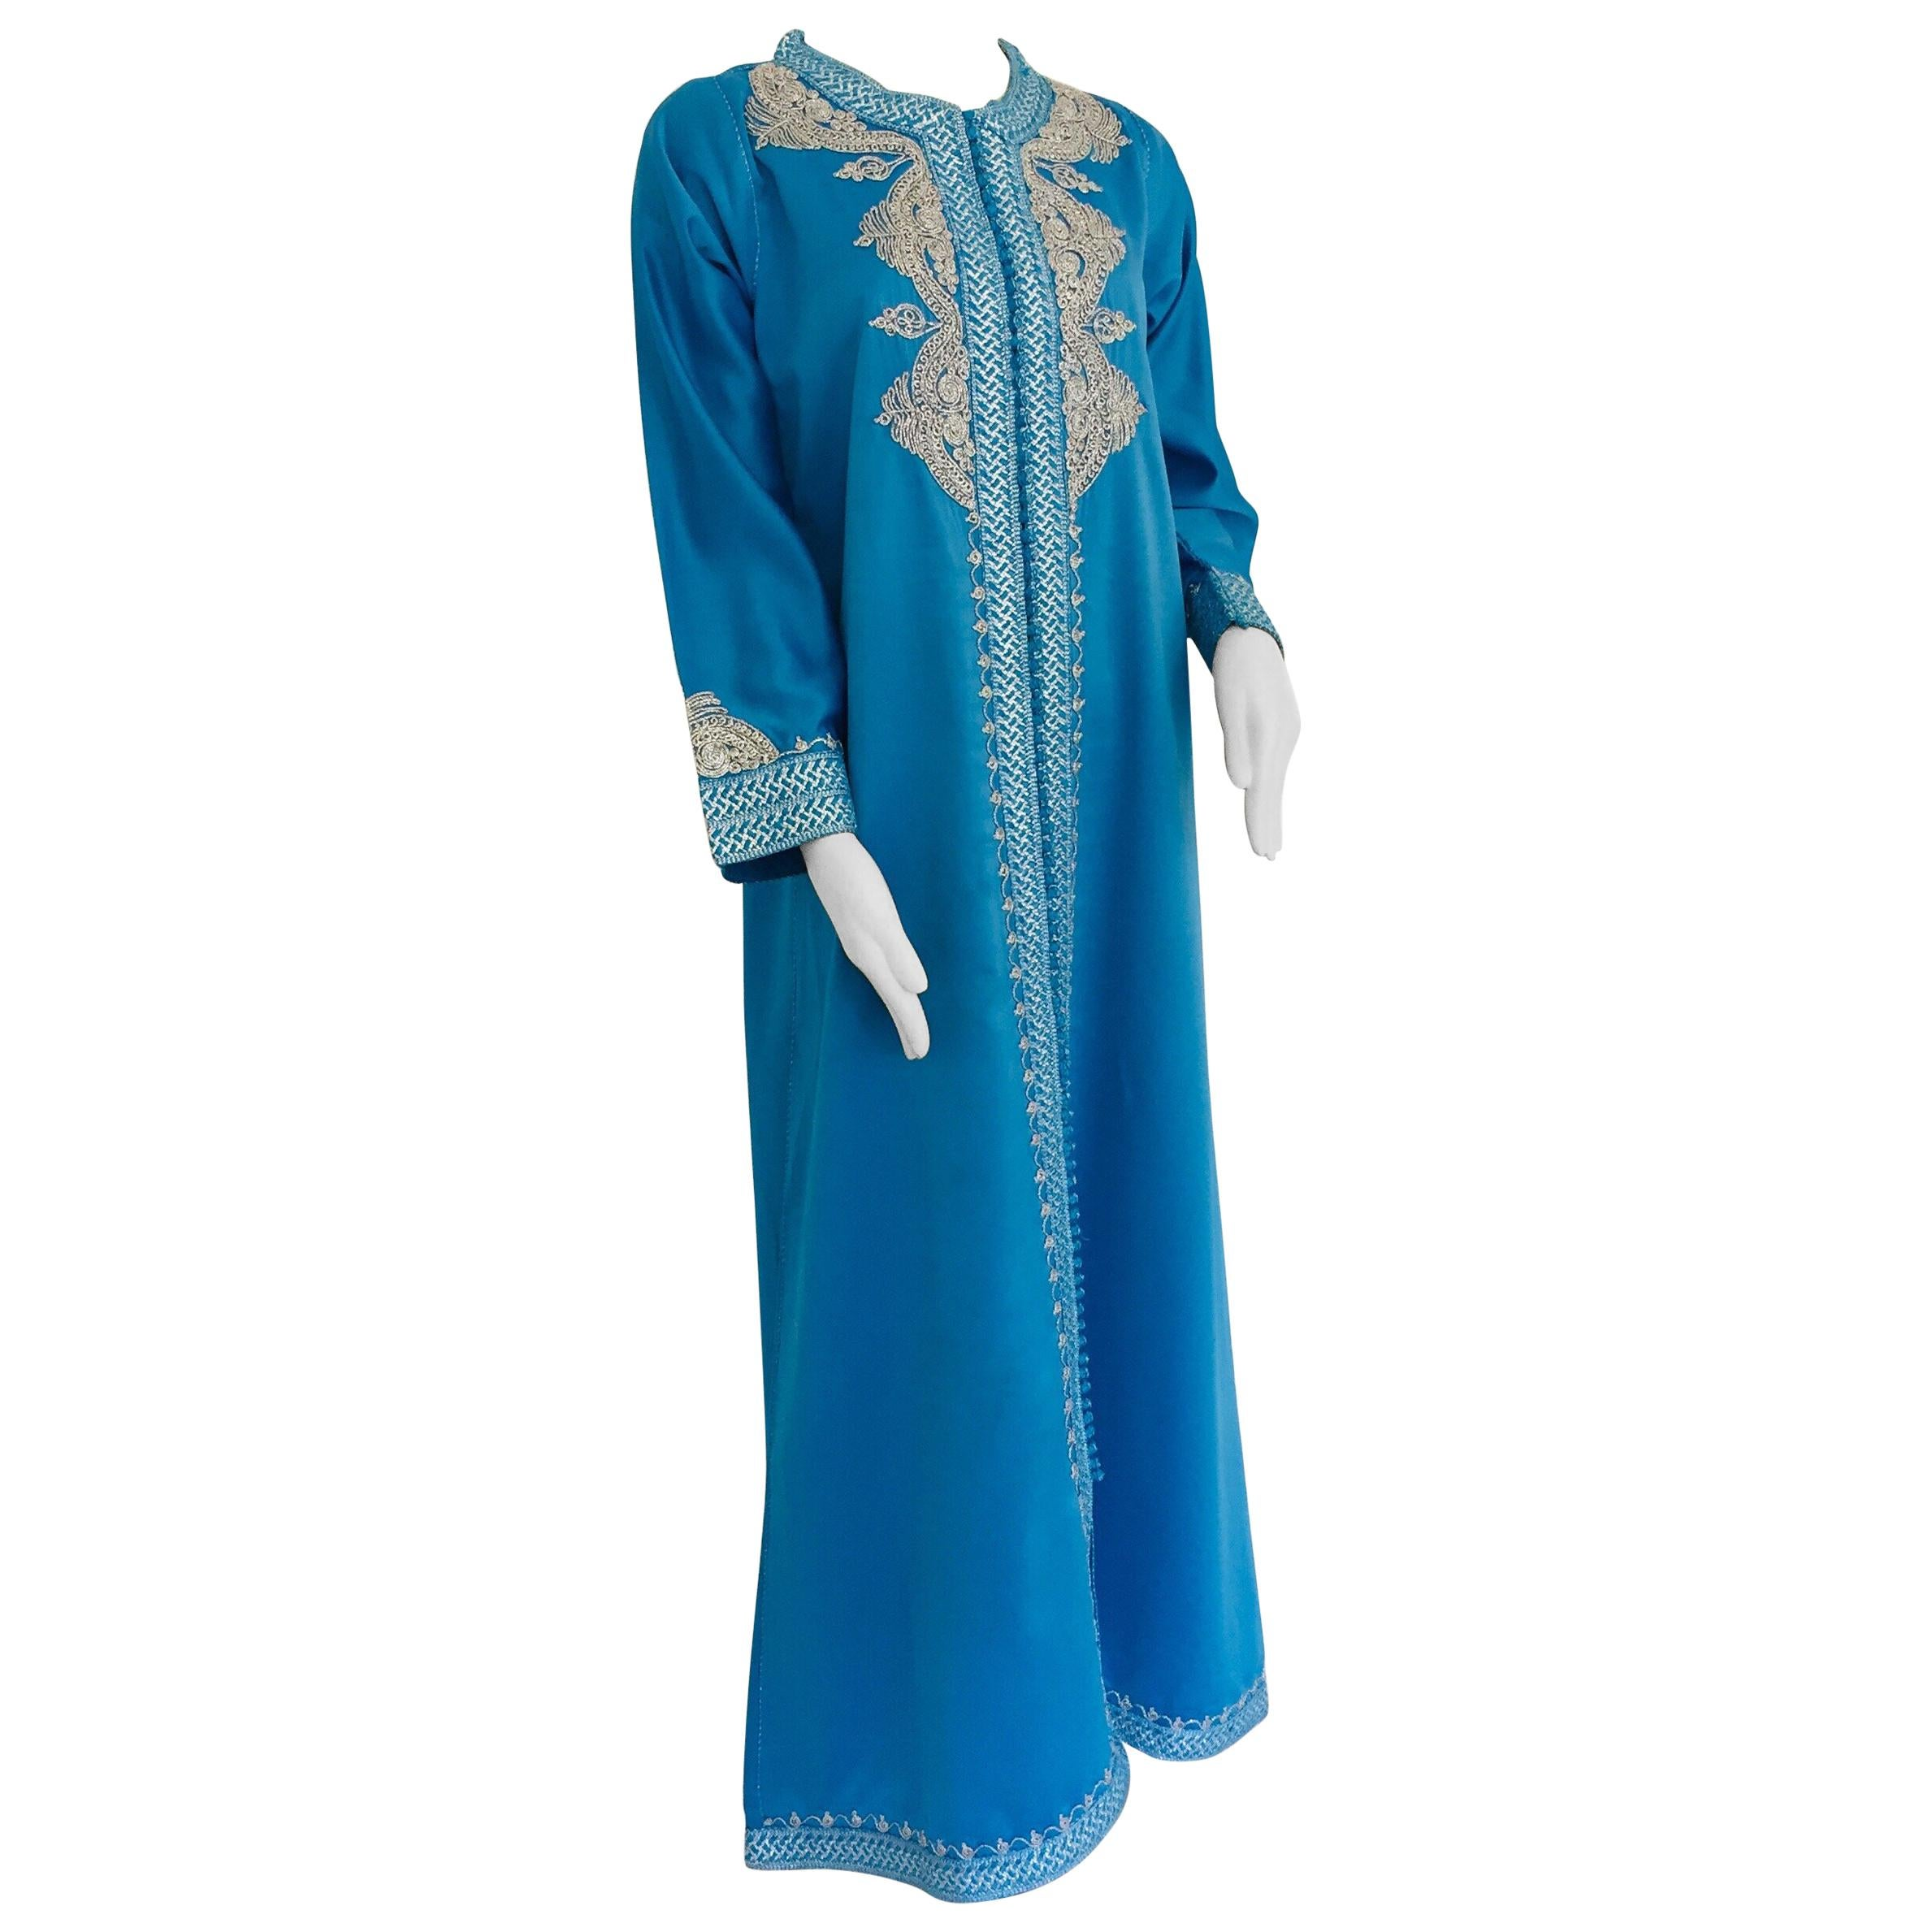 Moroccan Kaftan in Turquoise Blue and Silver